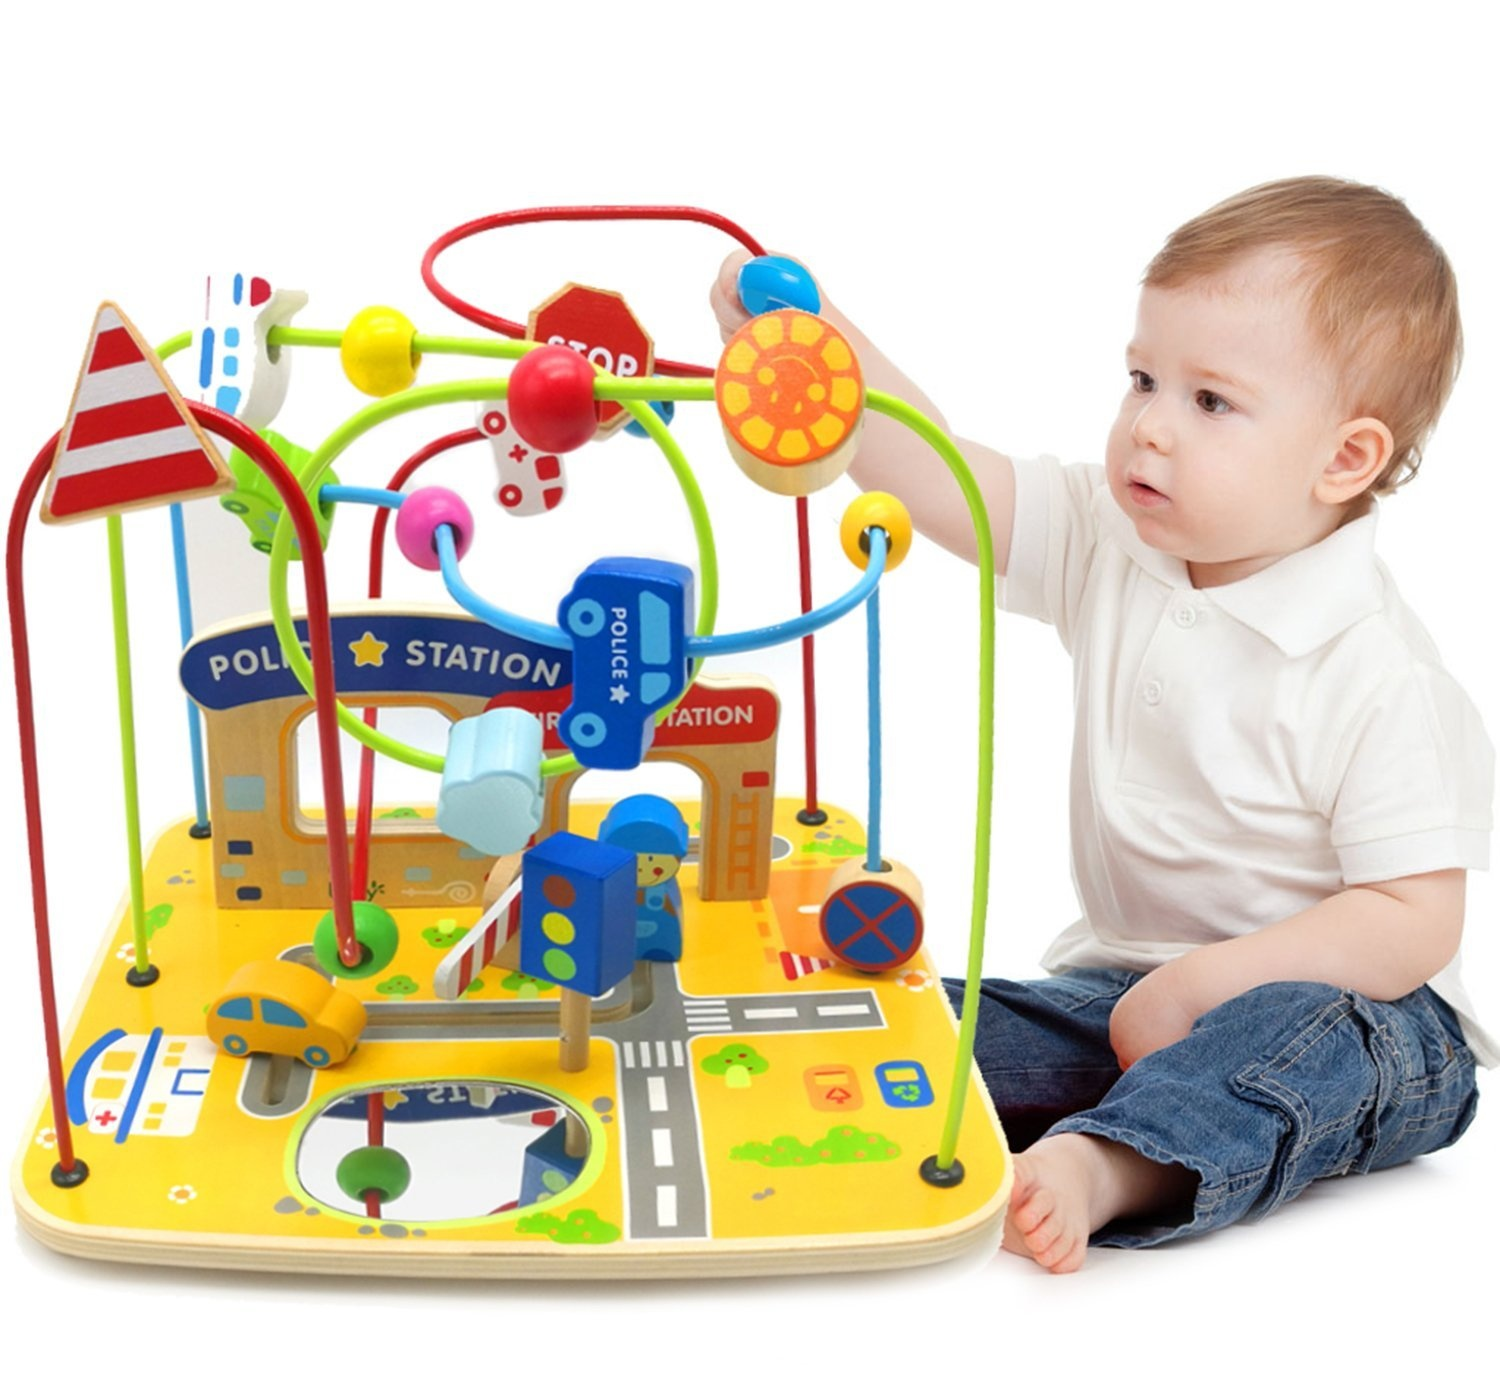 Alead Extra Large Wooden Bead Maze For Baby Toddler First Learning Activity Developmental Toys